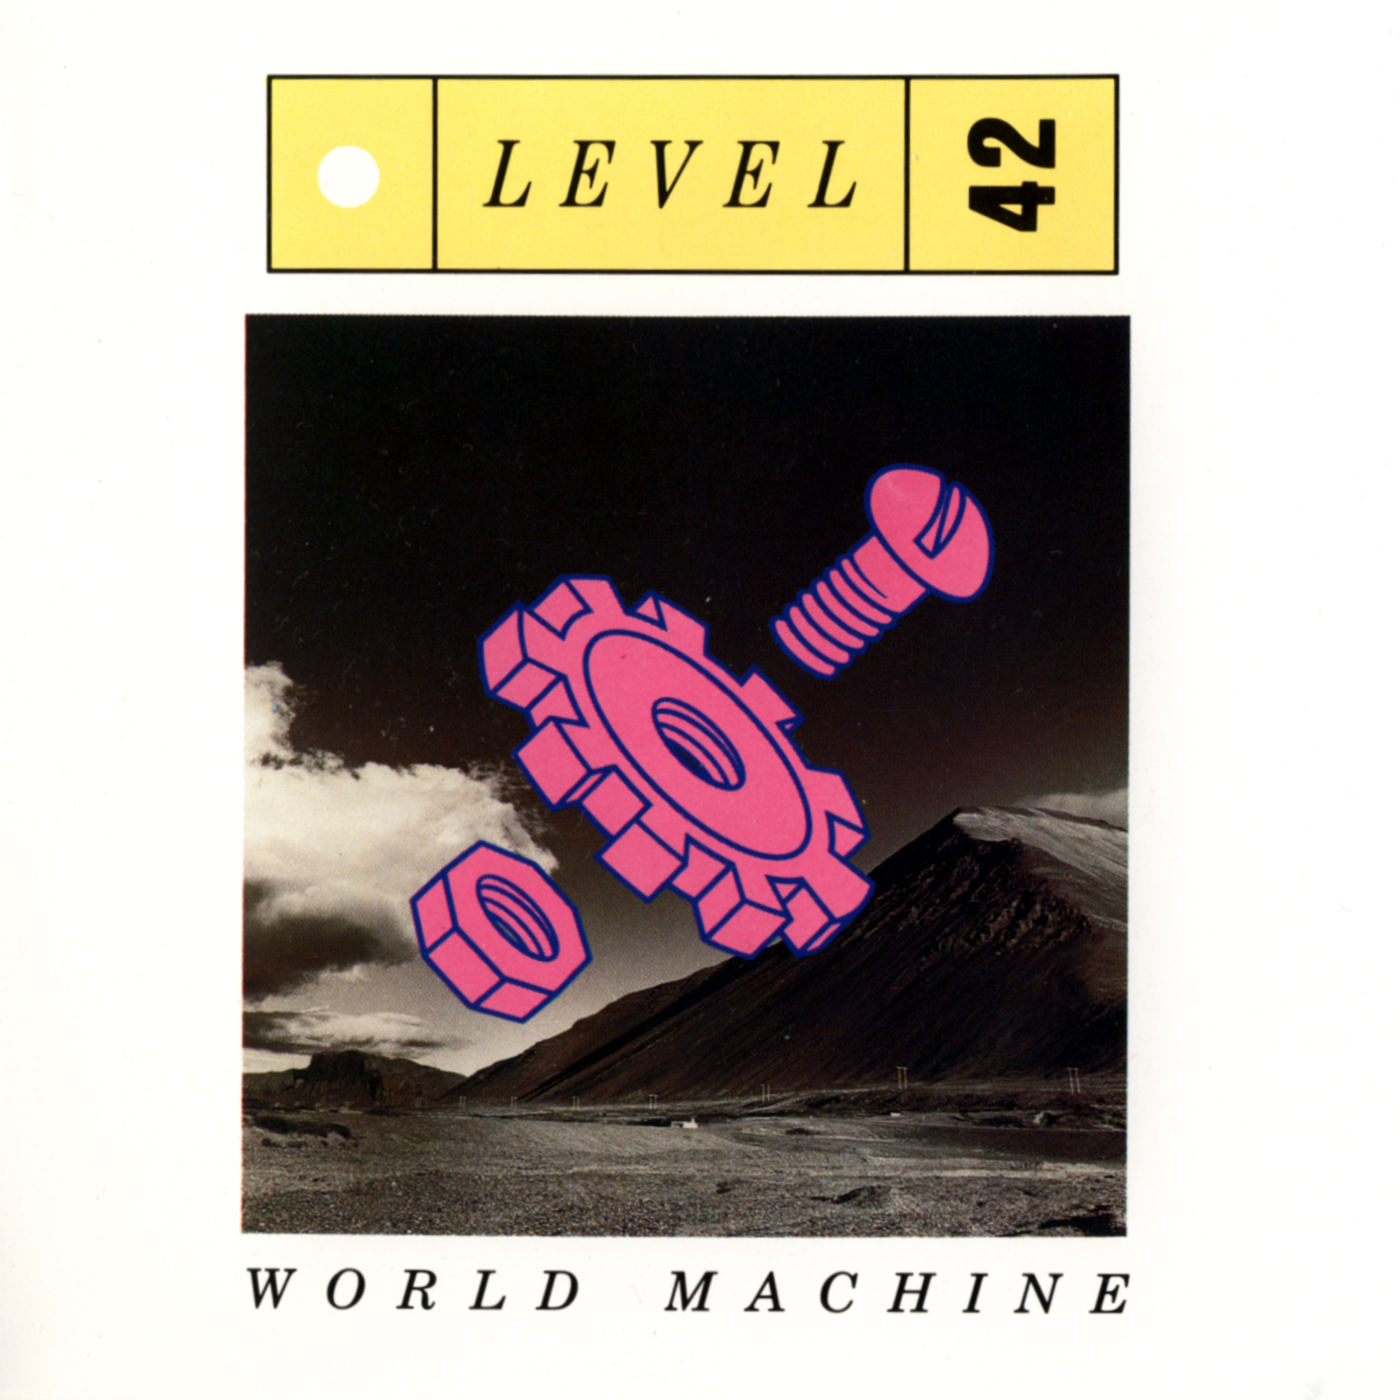 Level 42s World Machine 30 Years Old Today